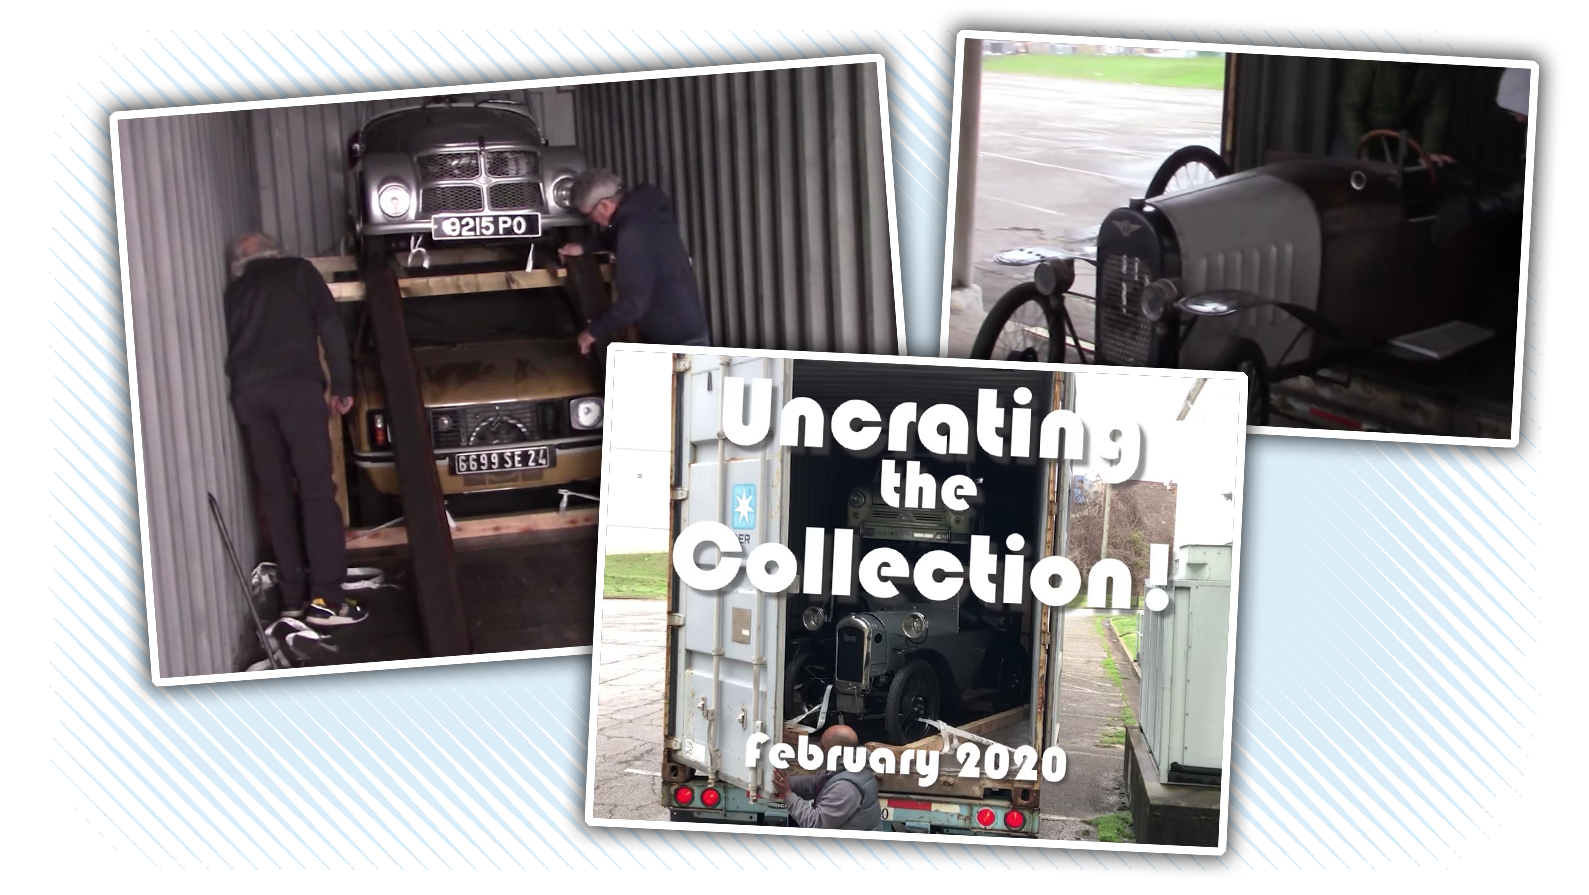 The Lane Motor Museum Is Now Making Un-Crating Videos